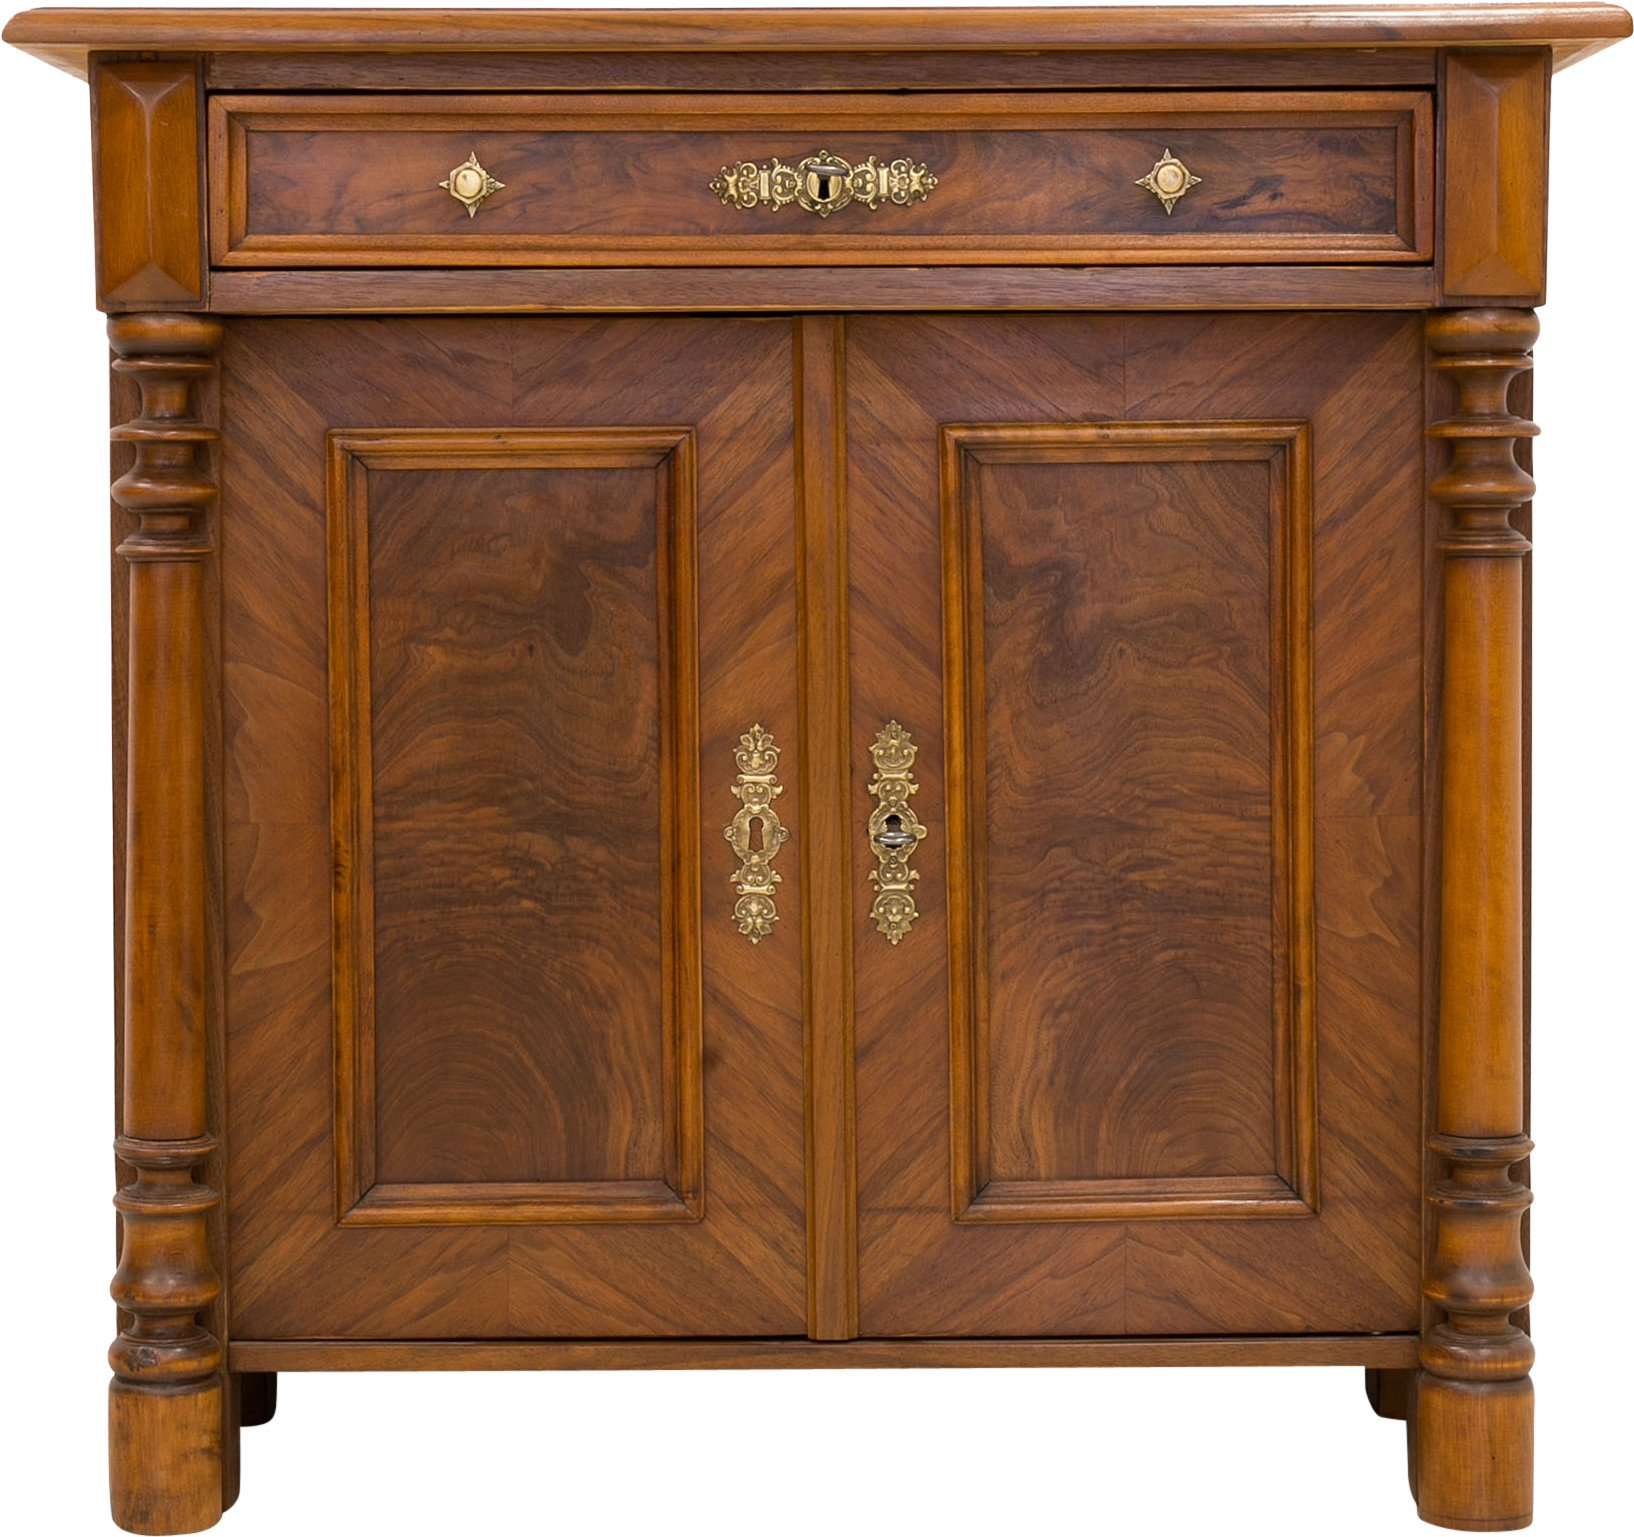 Cabinet, Germany, 2nd half of 19th C.